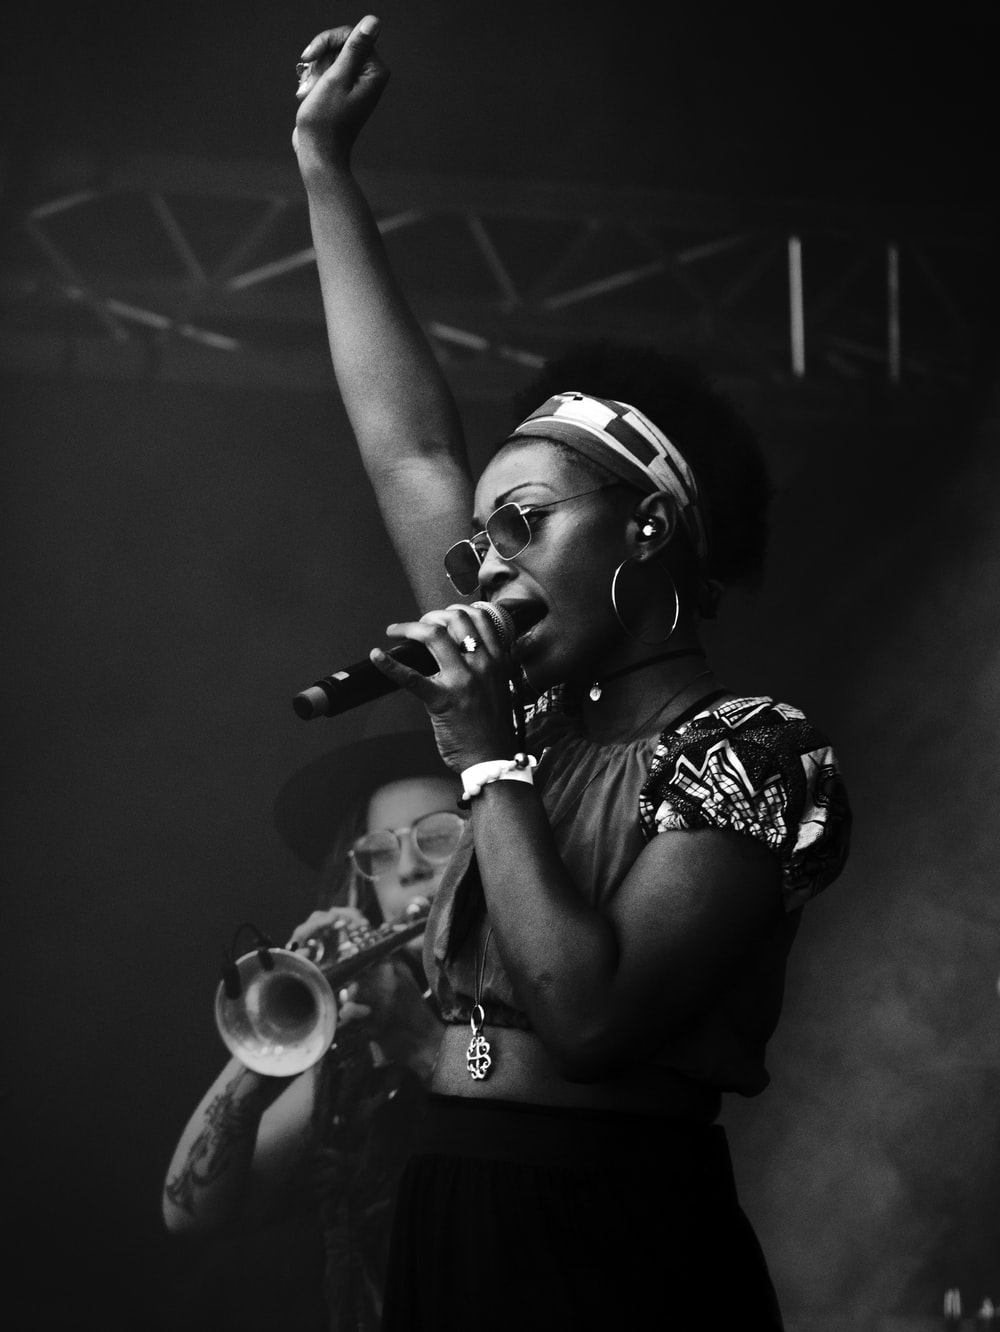 grayscale photography of woman holding microphone